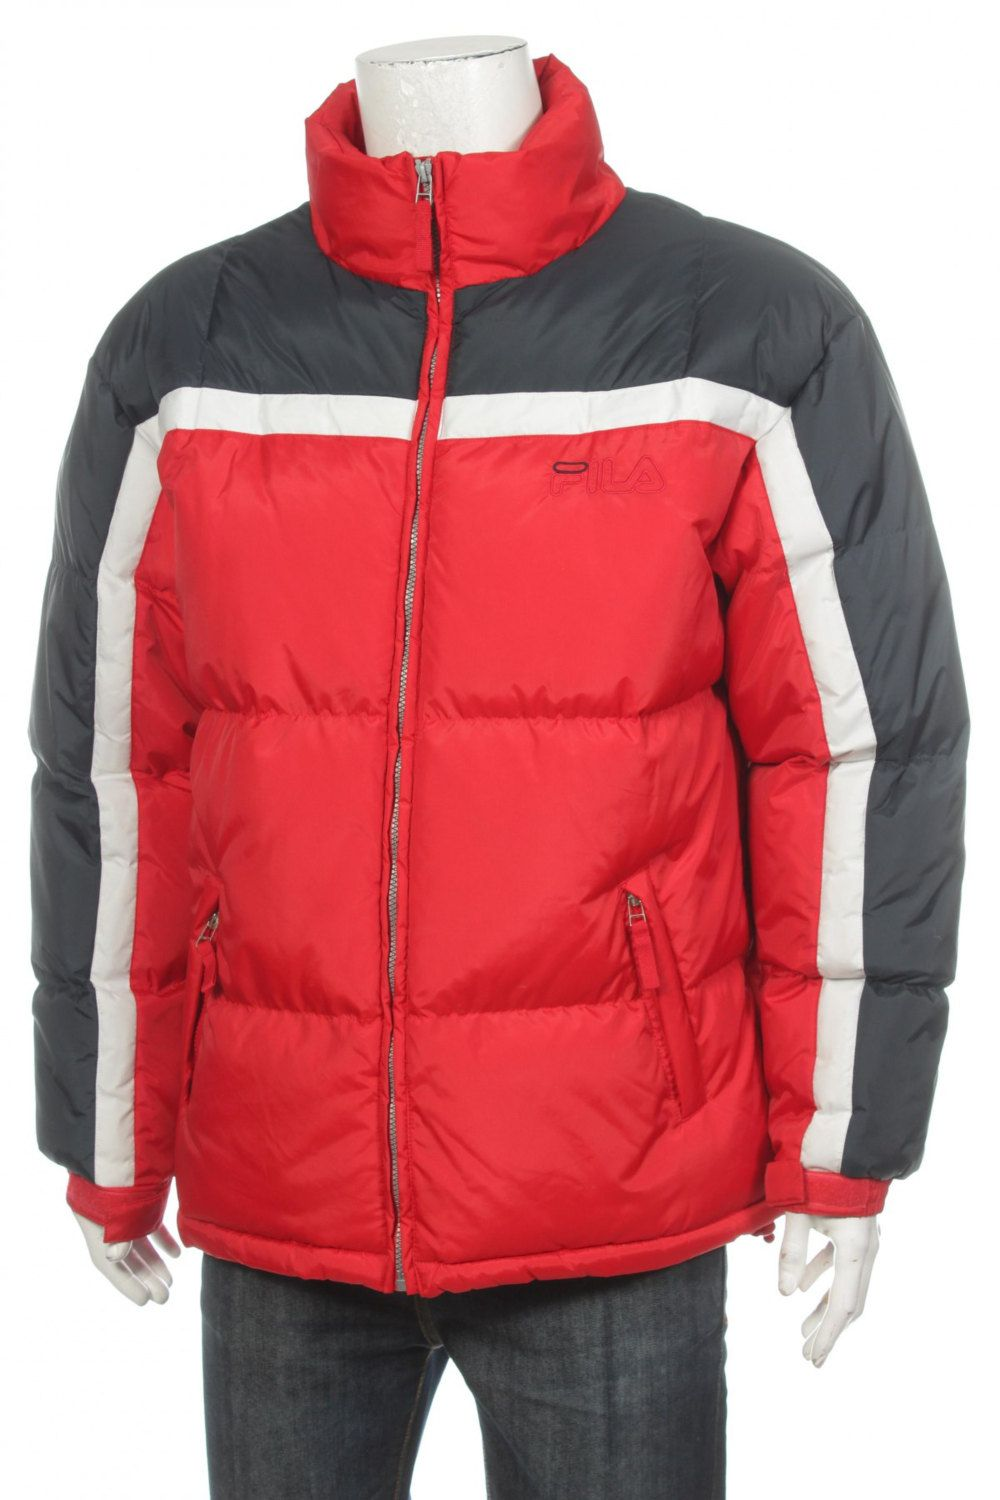 Vintage 90s Fila Polyamide Puffer jacket Big logo Spell Out Blue/Red Size M xc50xxbD5